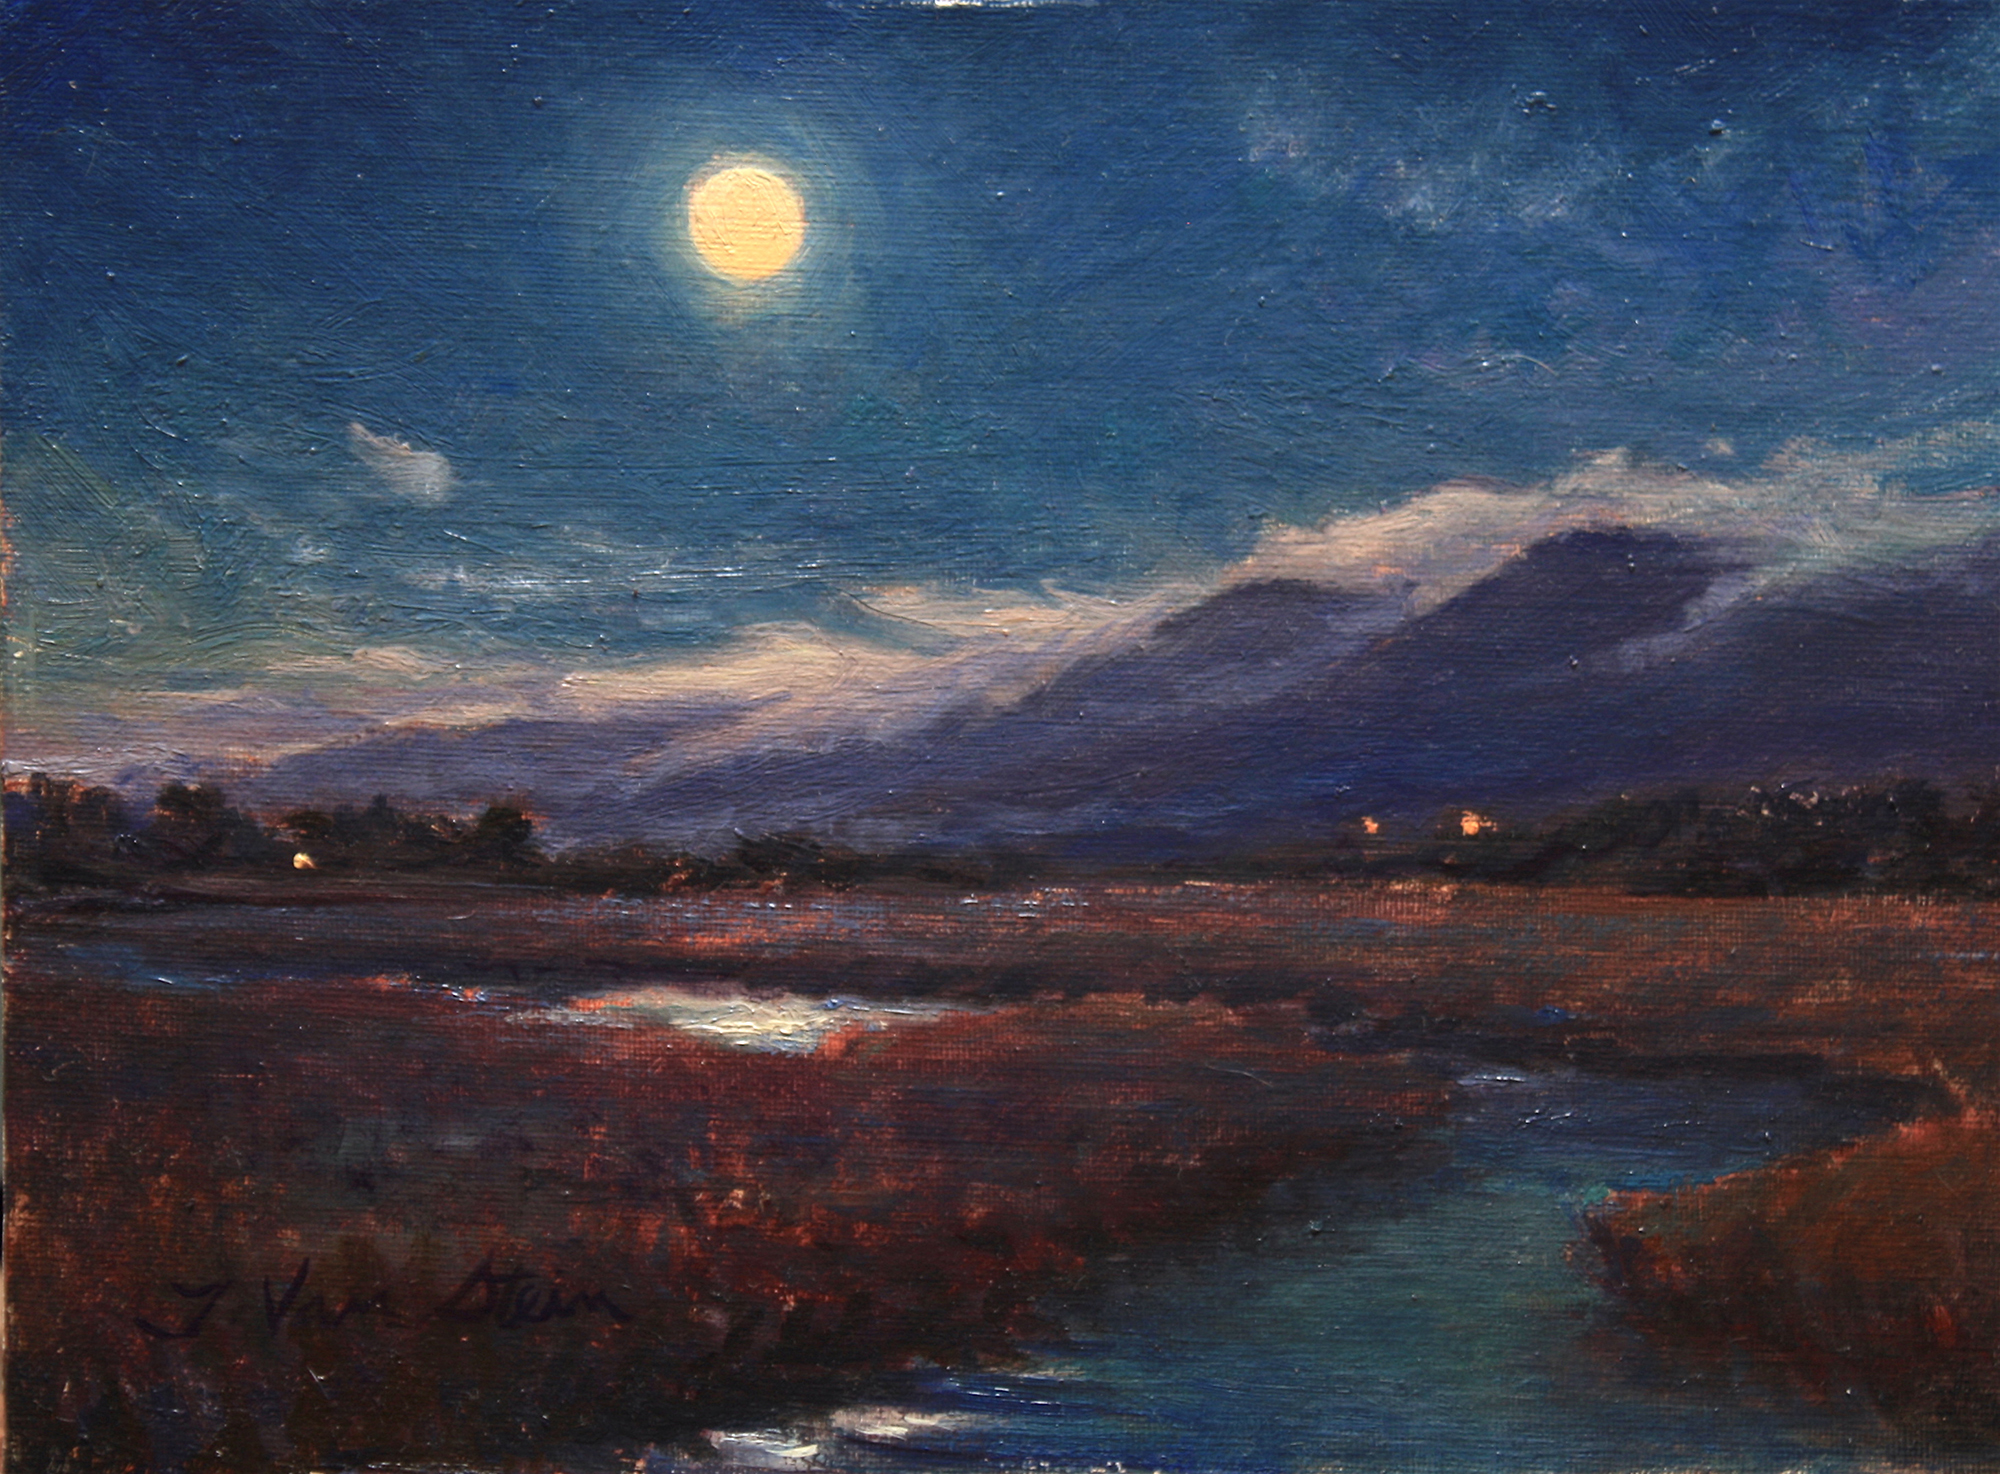 Winter Moon Set, Carp Marsh,  9x12, oil on board, 2018